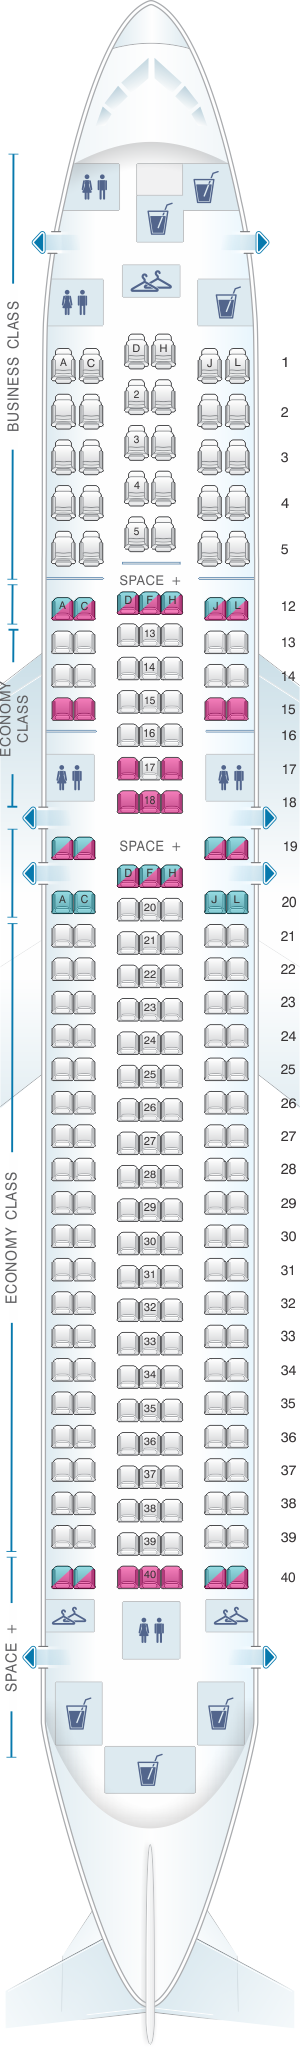 Seat map for LATAM Airlines Brasil Boeing B767 300ER V2